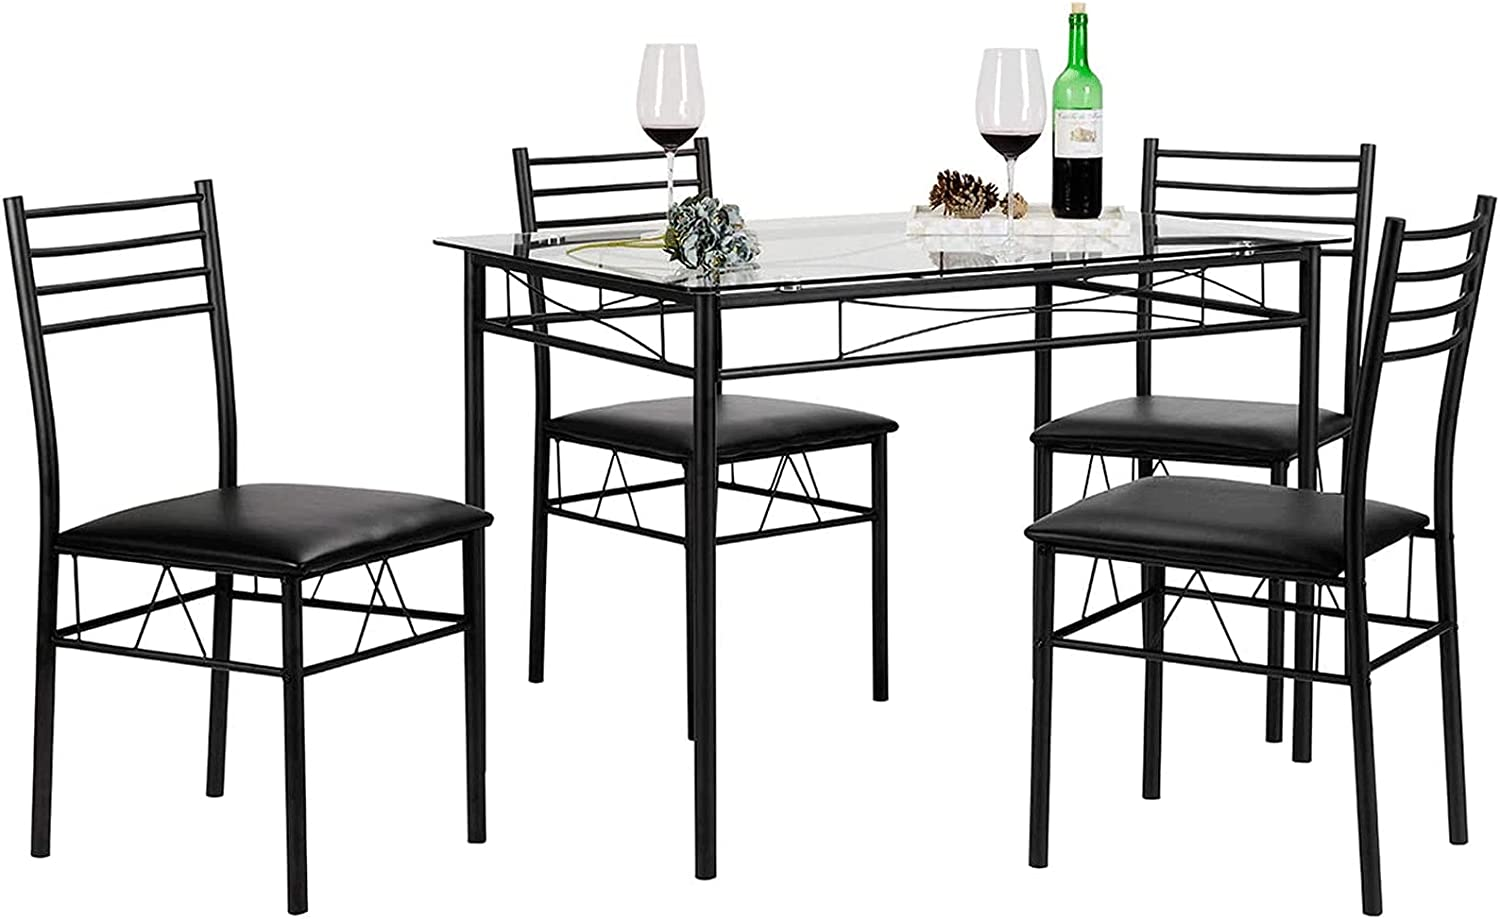 ZXZCHGN Dining Table online shop Houston Mall with Chair Chairs 4 Rectangular